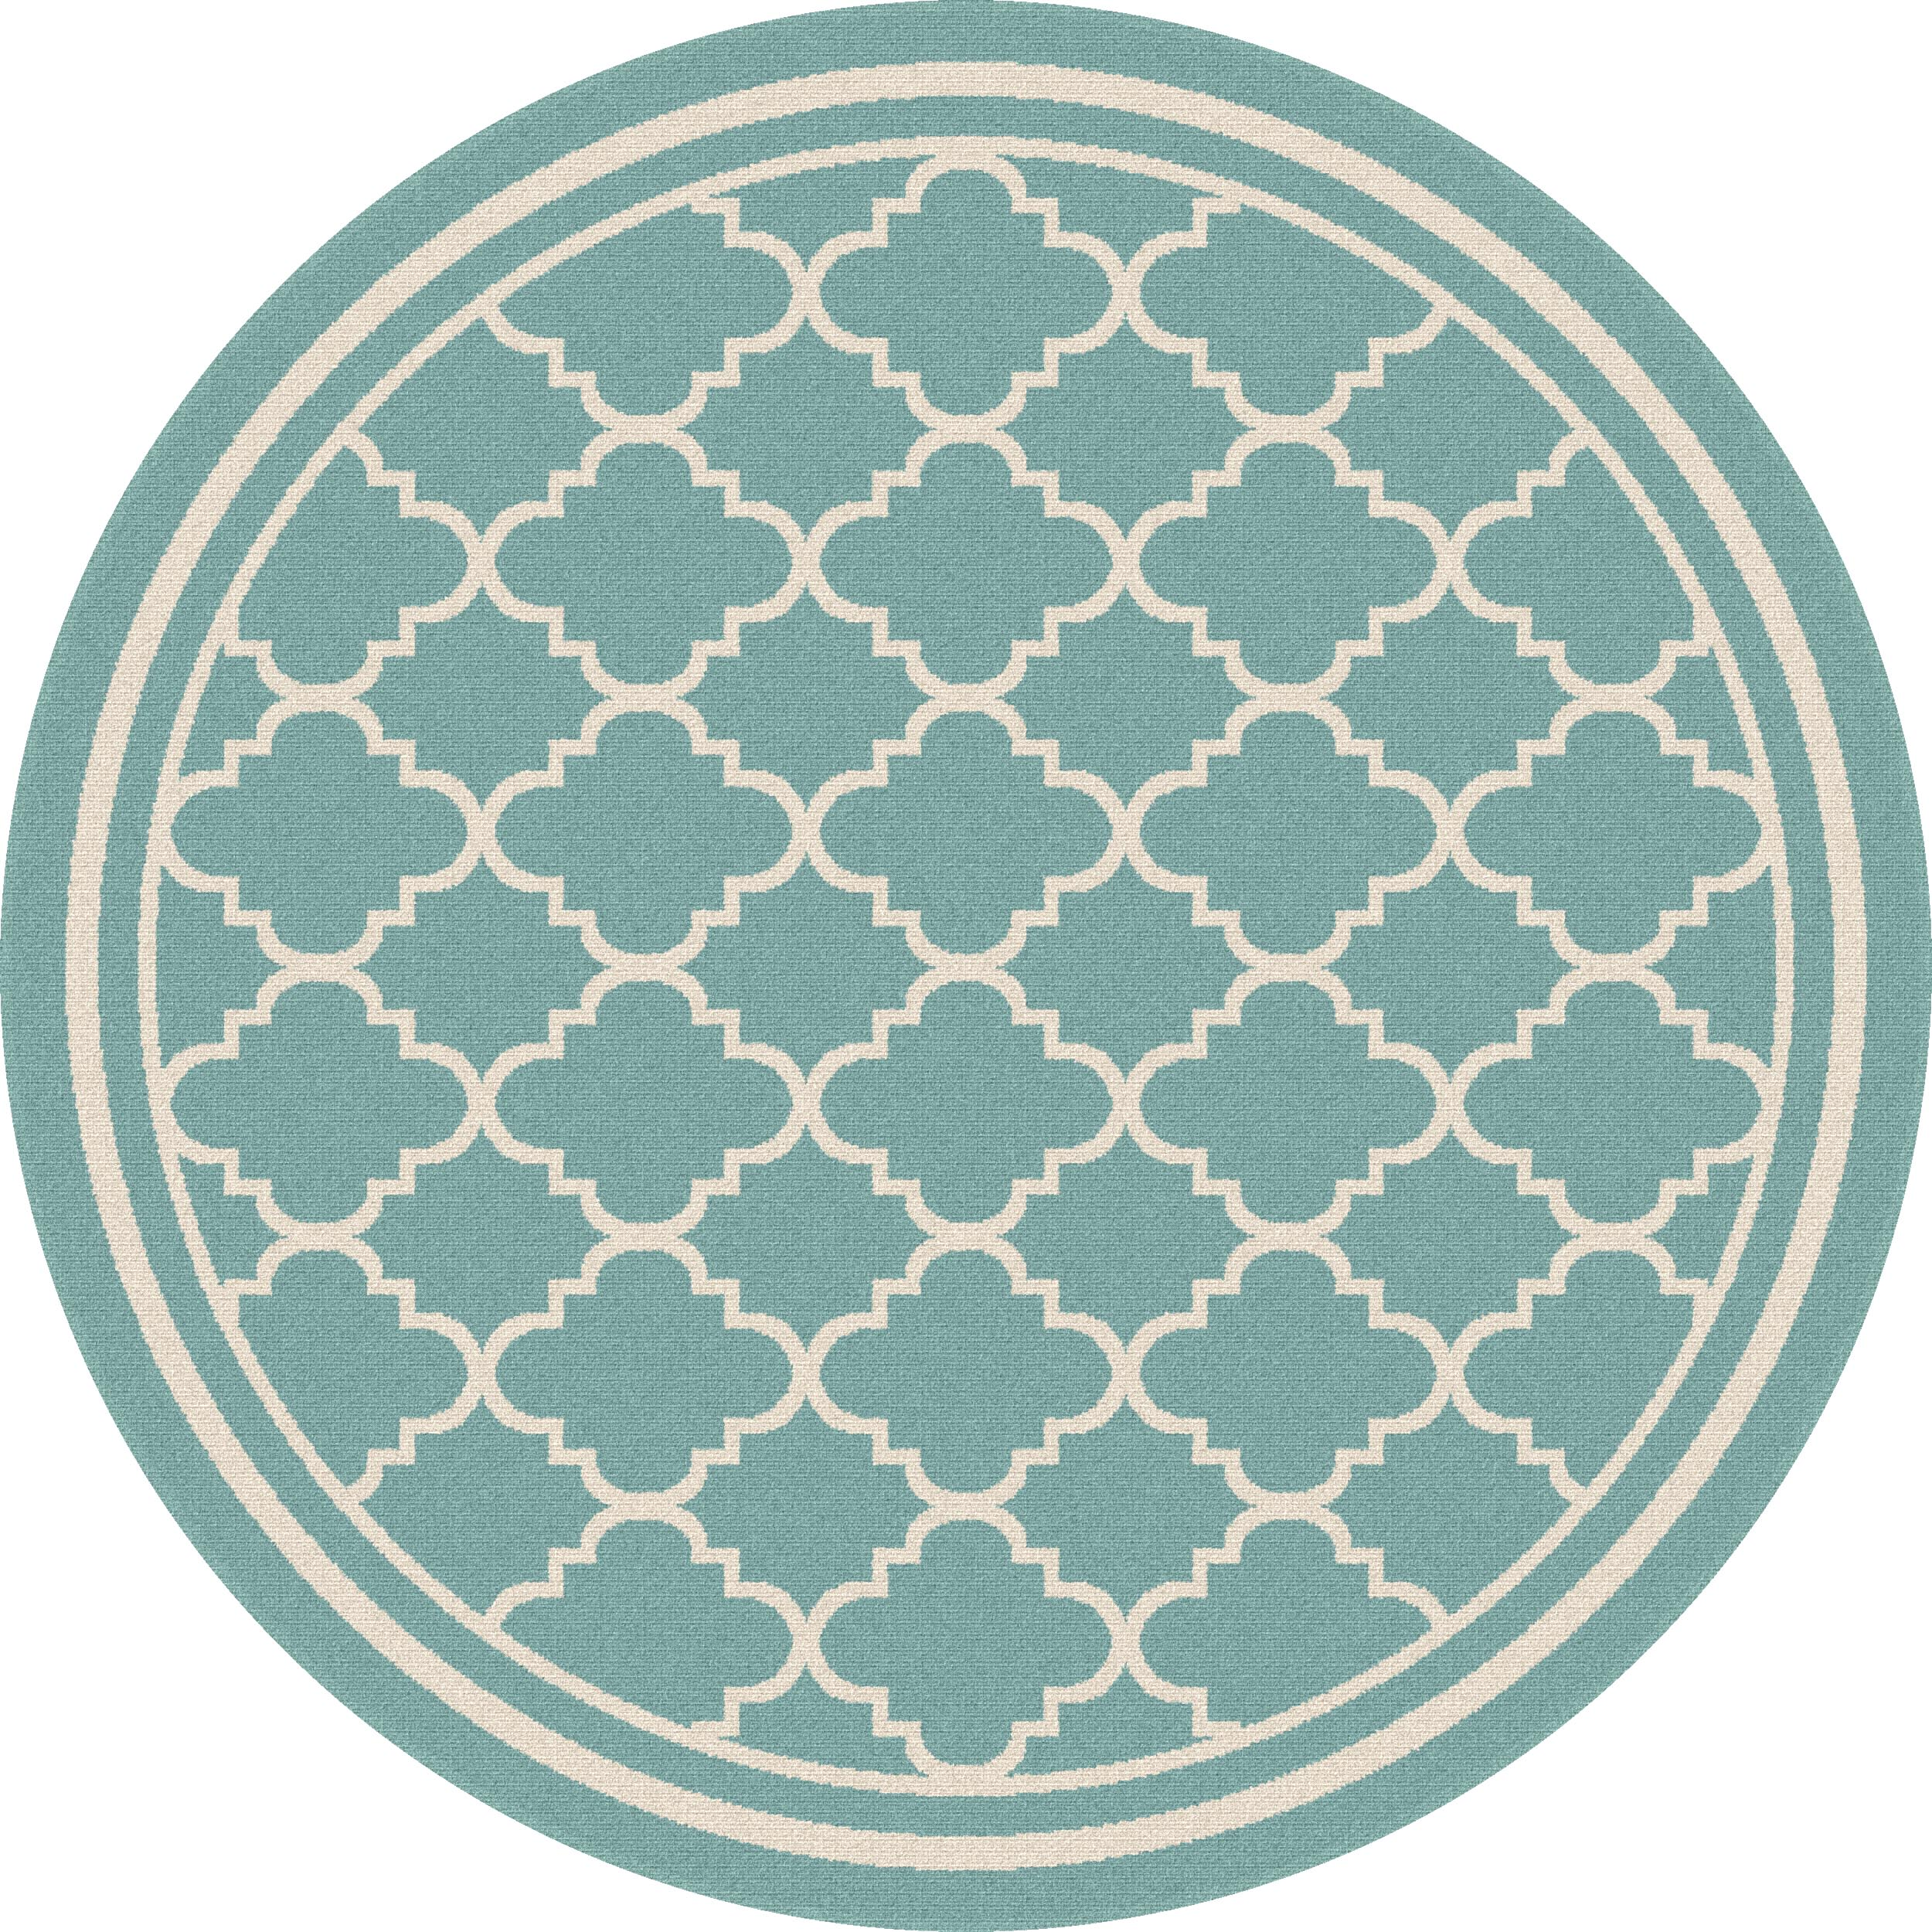 Round Rug Kmart Tayse Rugs Garden City Tangier Moroccan Tile 7 3910 39 39 Round